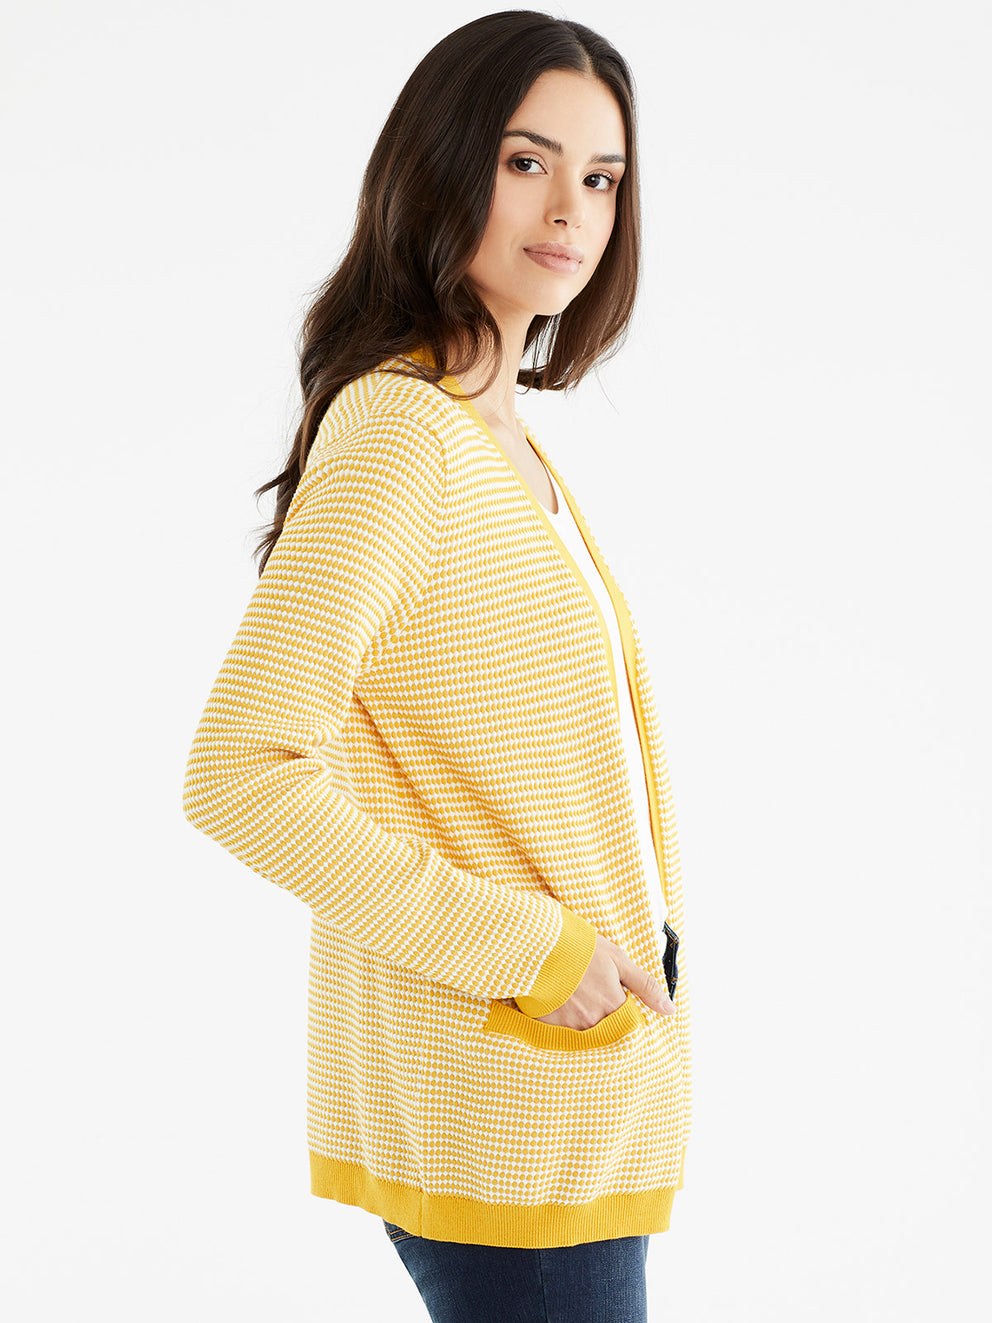 The Jones New York V-Neck Open Cardigan in color Dotted Golden - Image Position 2